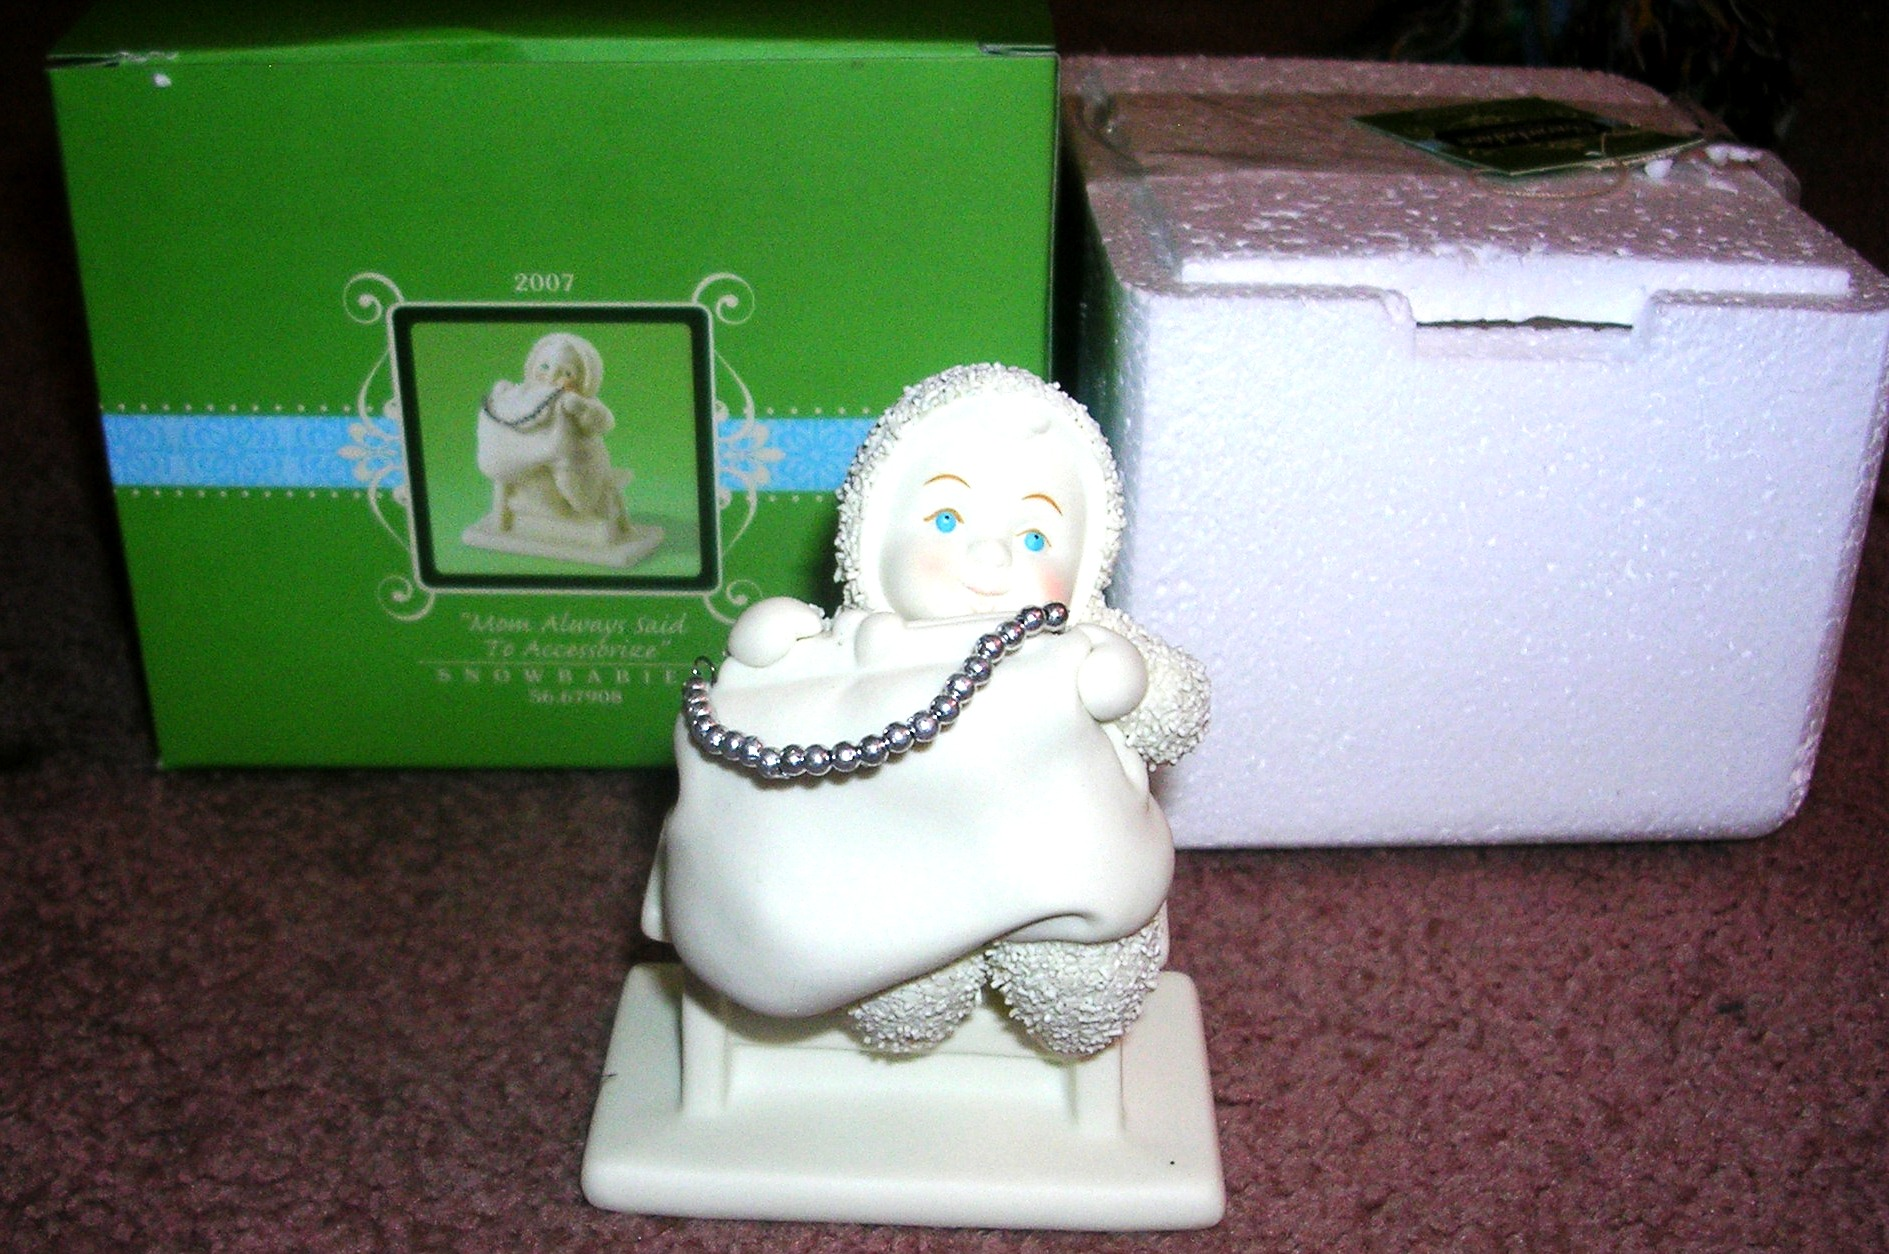 Snowbabies Mom Always Said To Accessorize Dept 56 2007